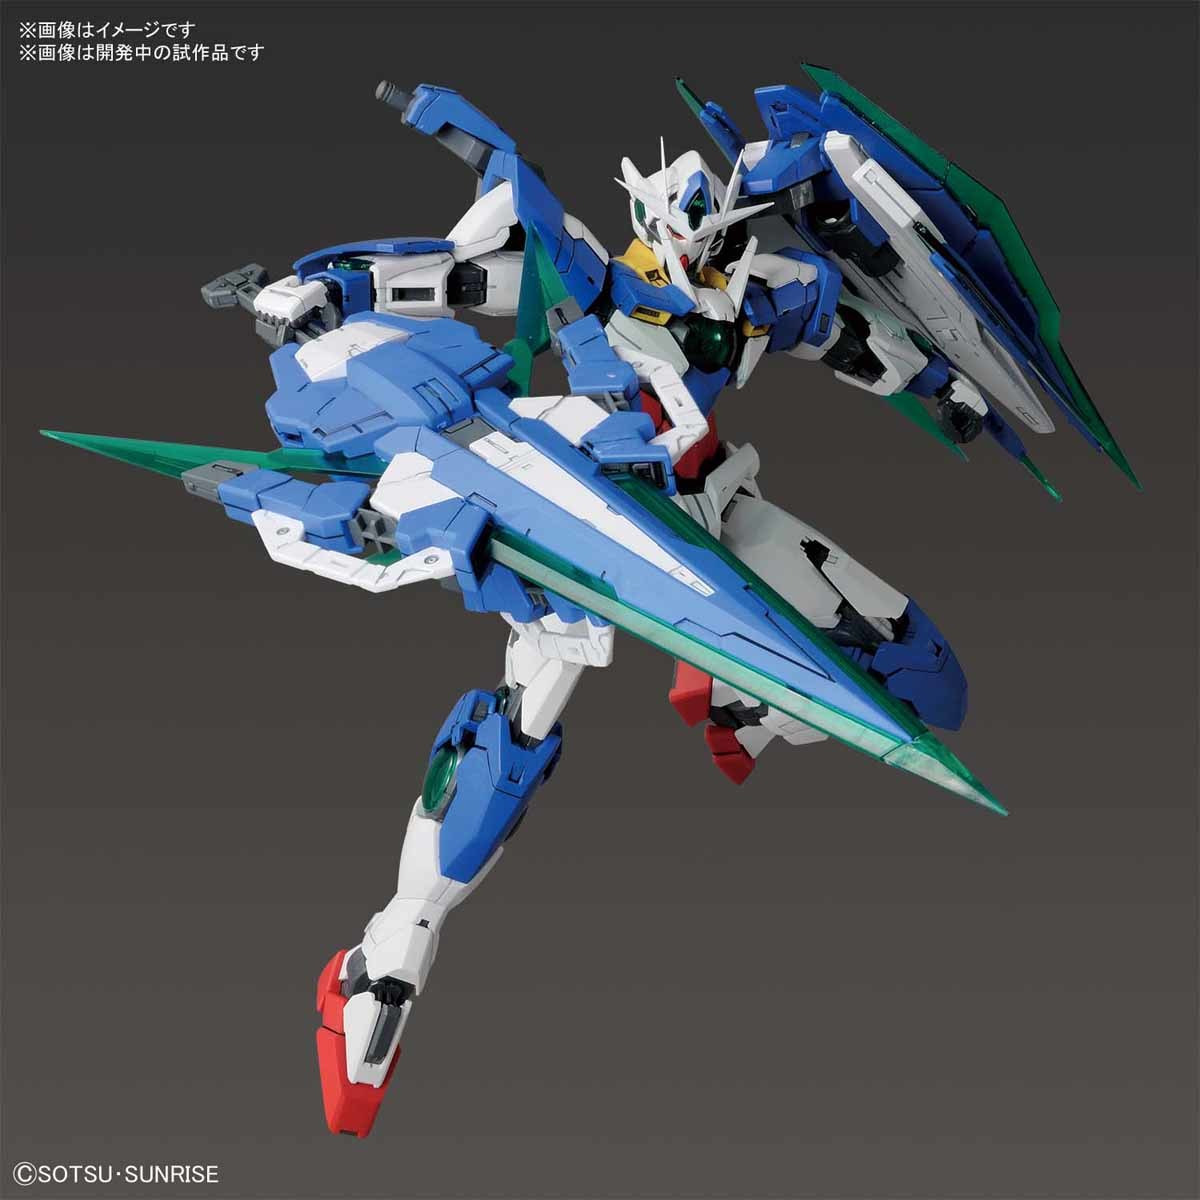 MG 1/100 00 Quanta Full Saber attack pose